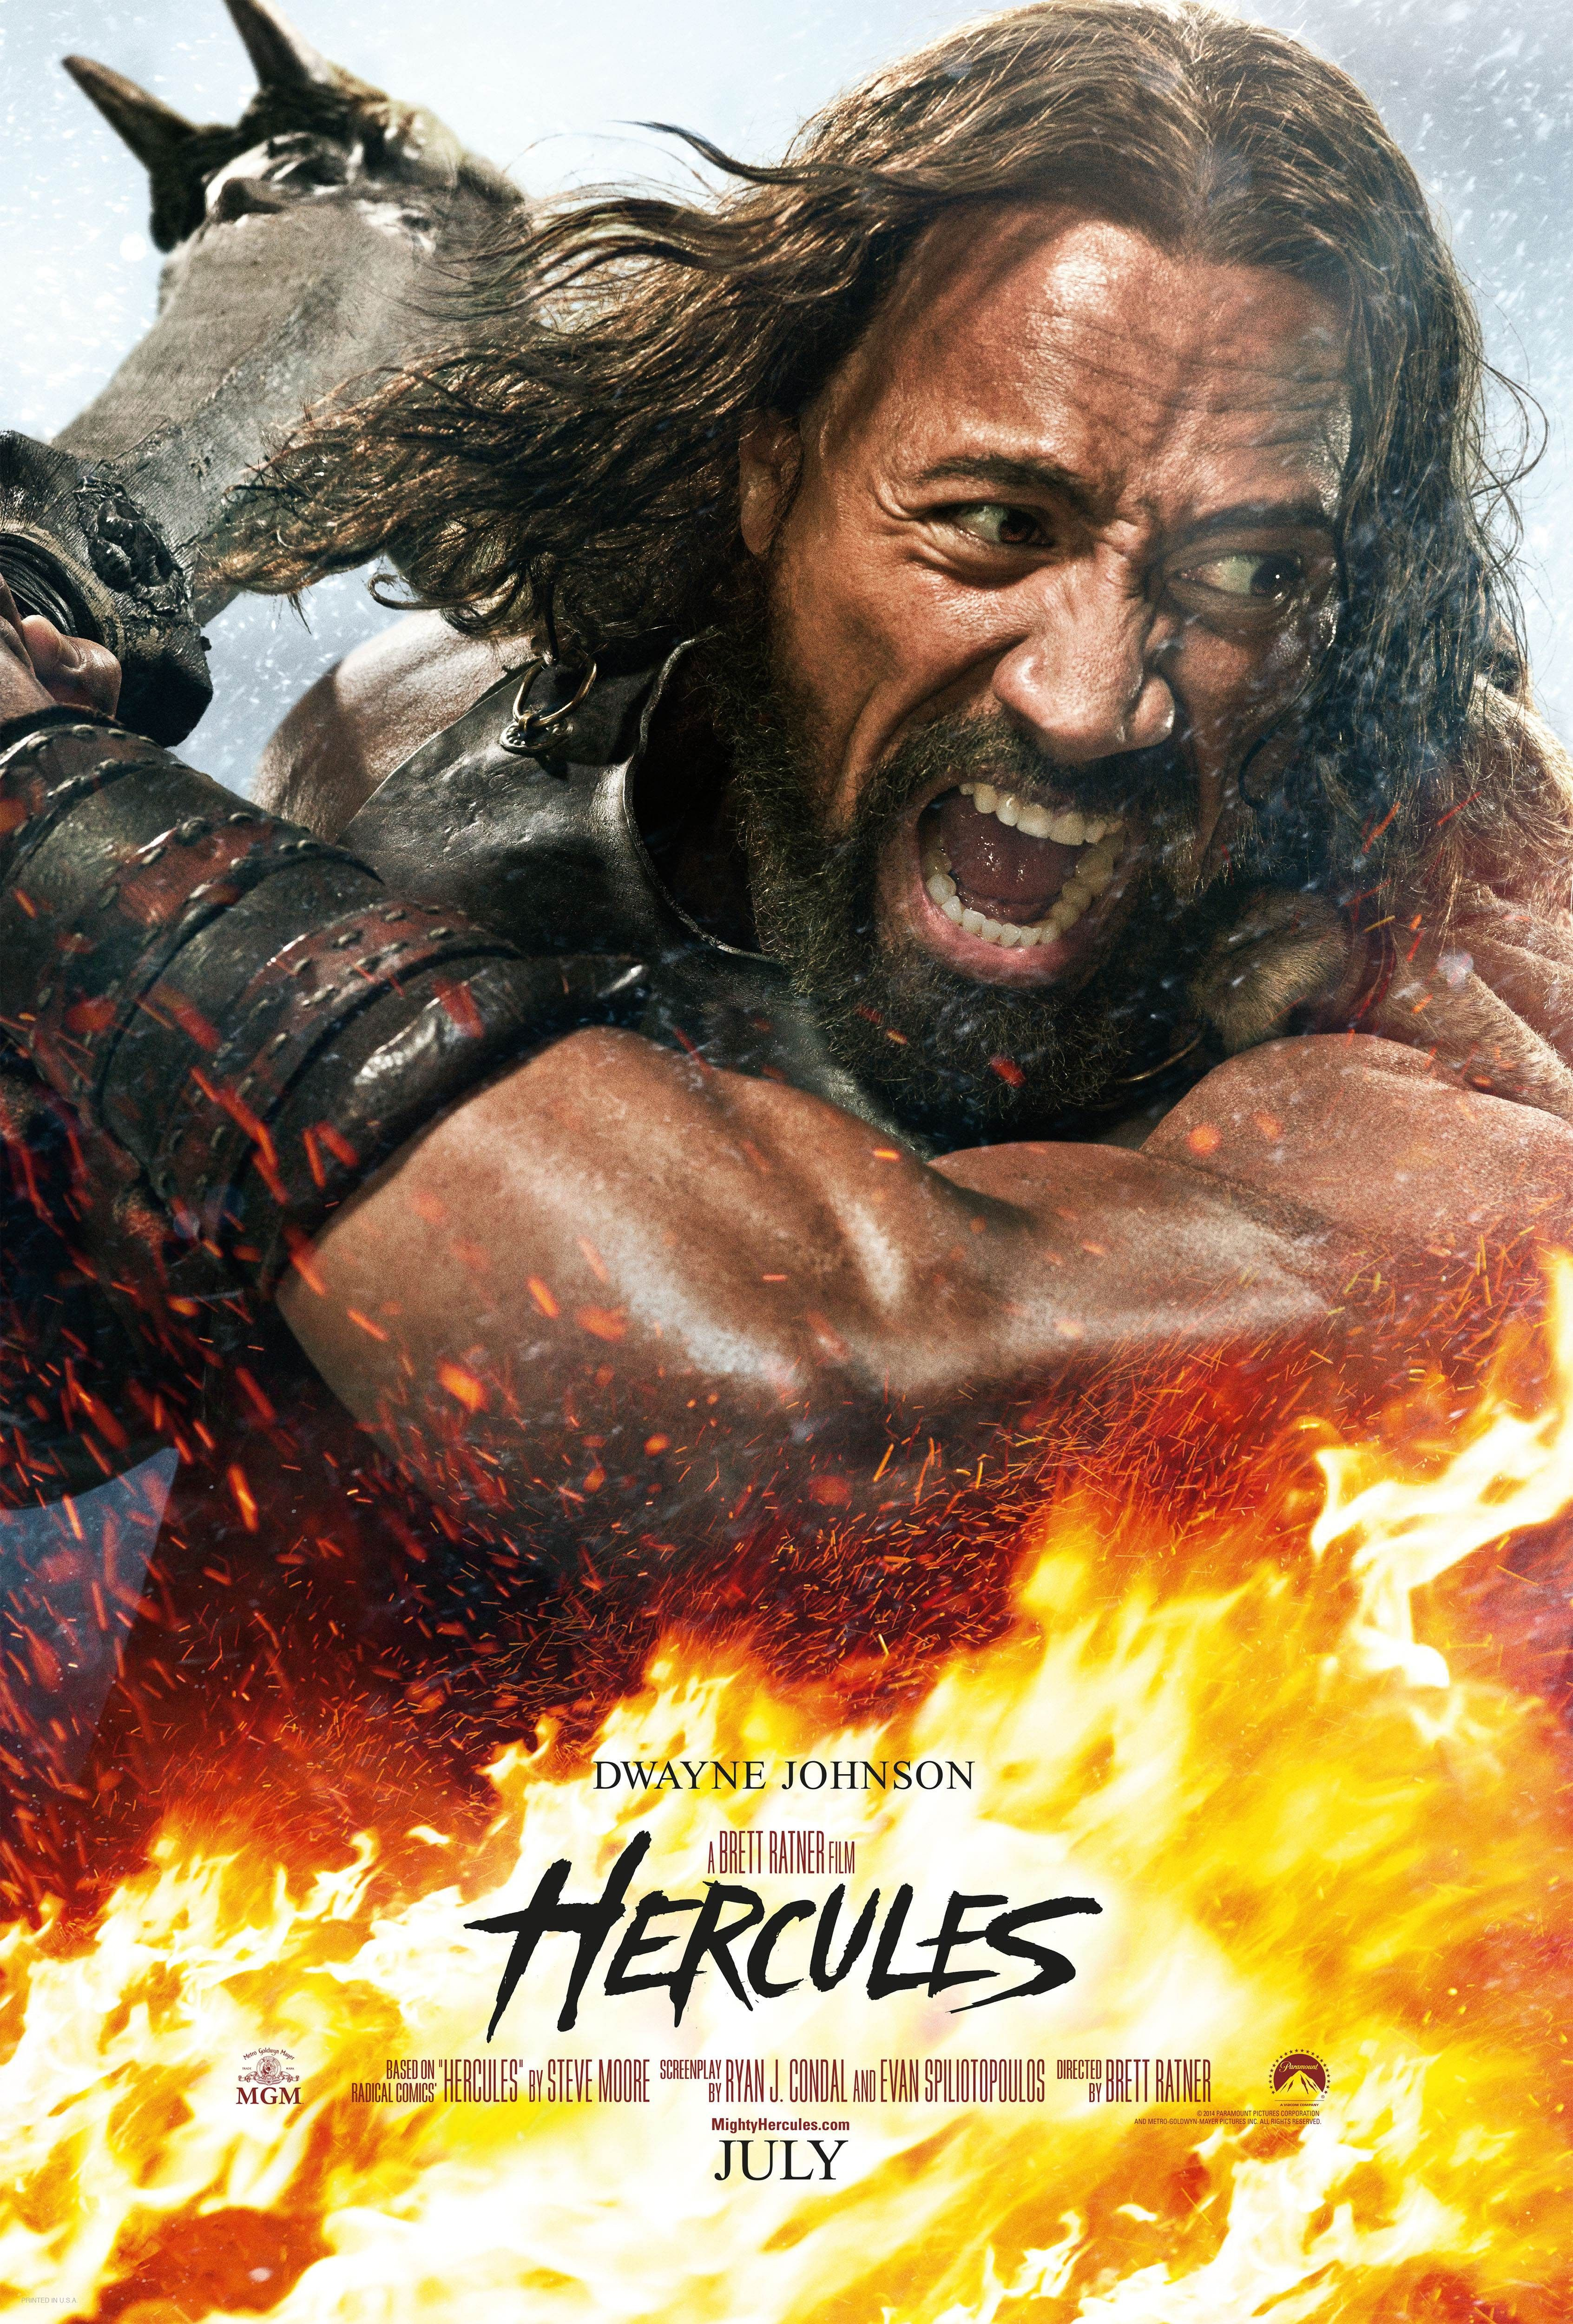 a comparison of the characters and heroic actions of hercules and beowulf